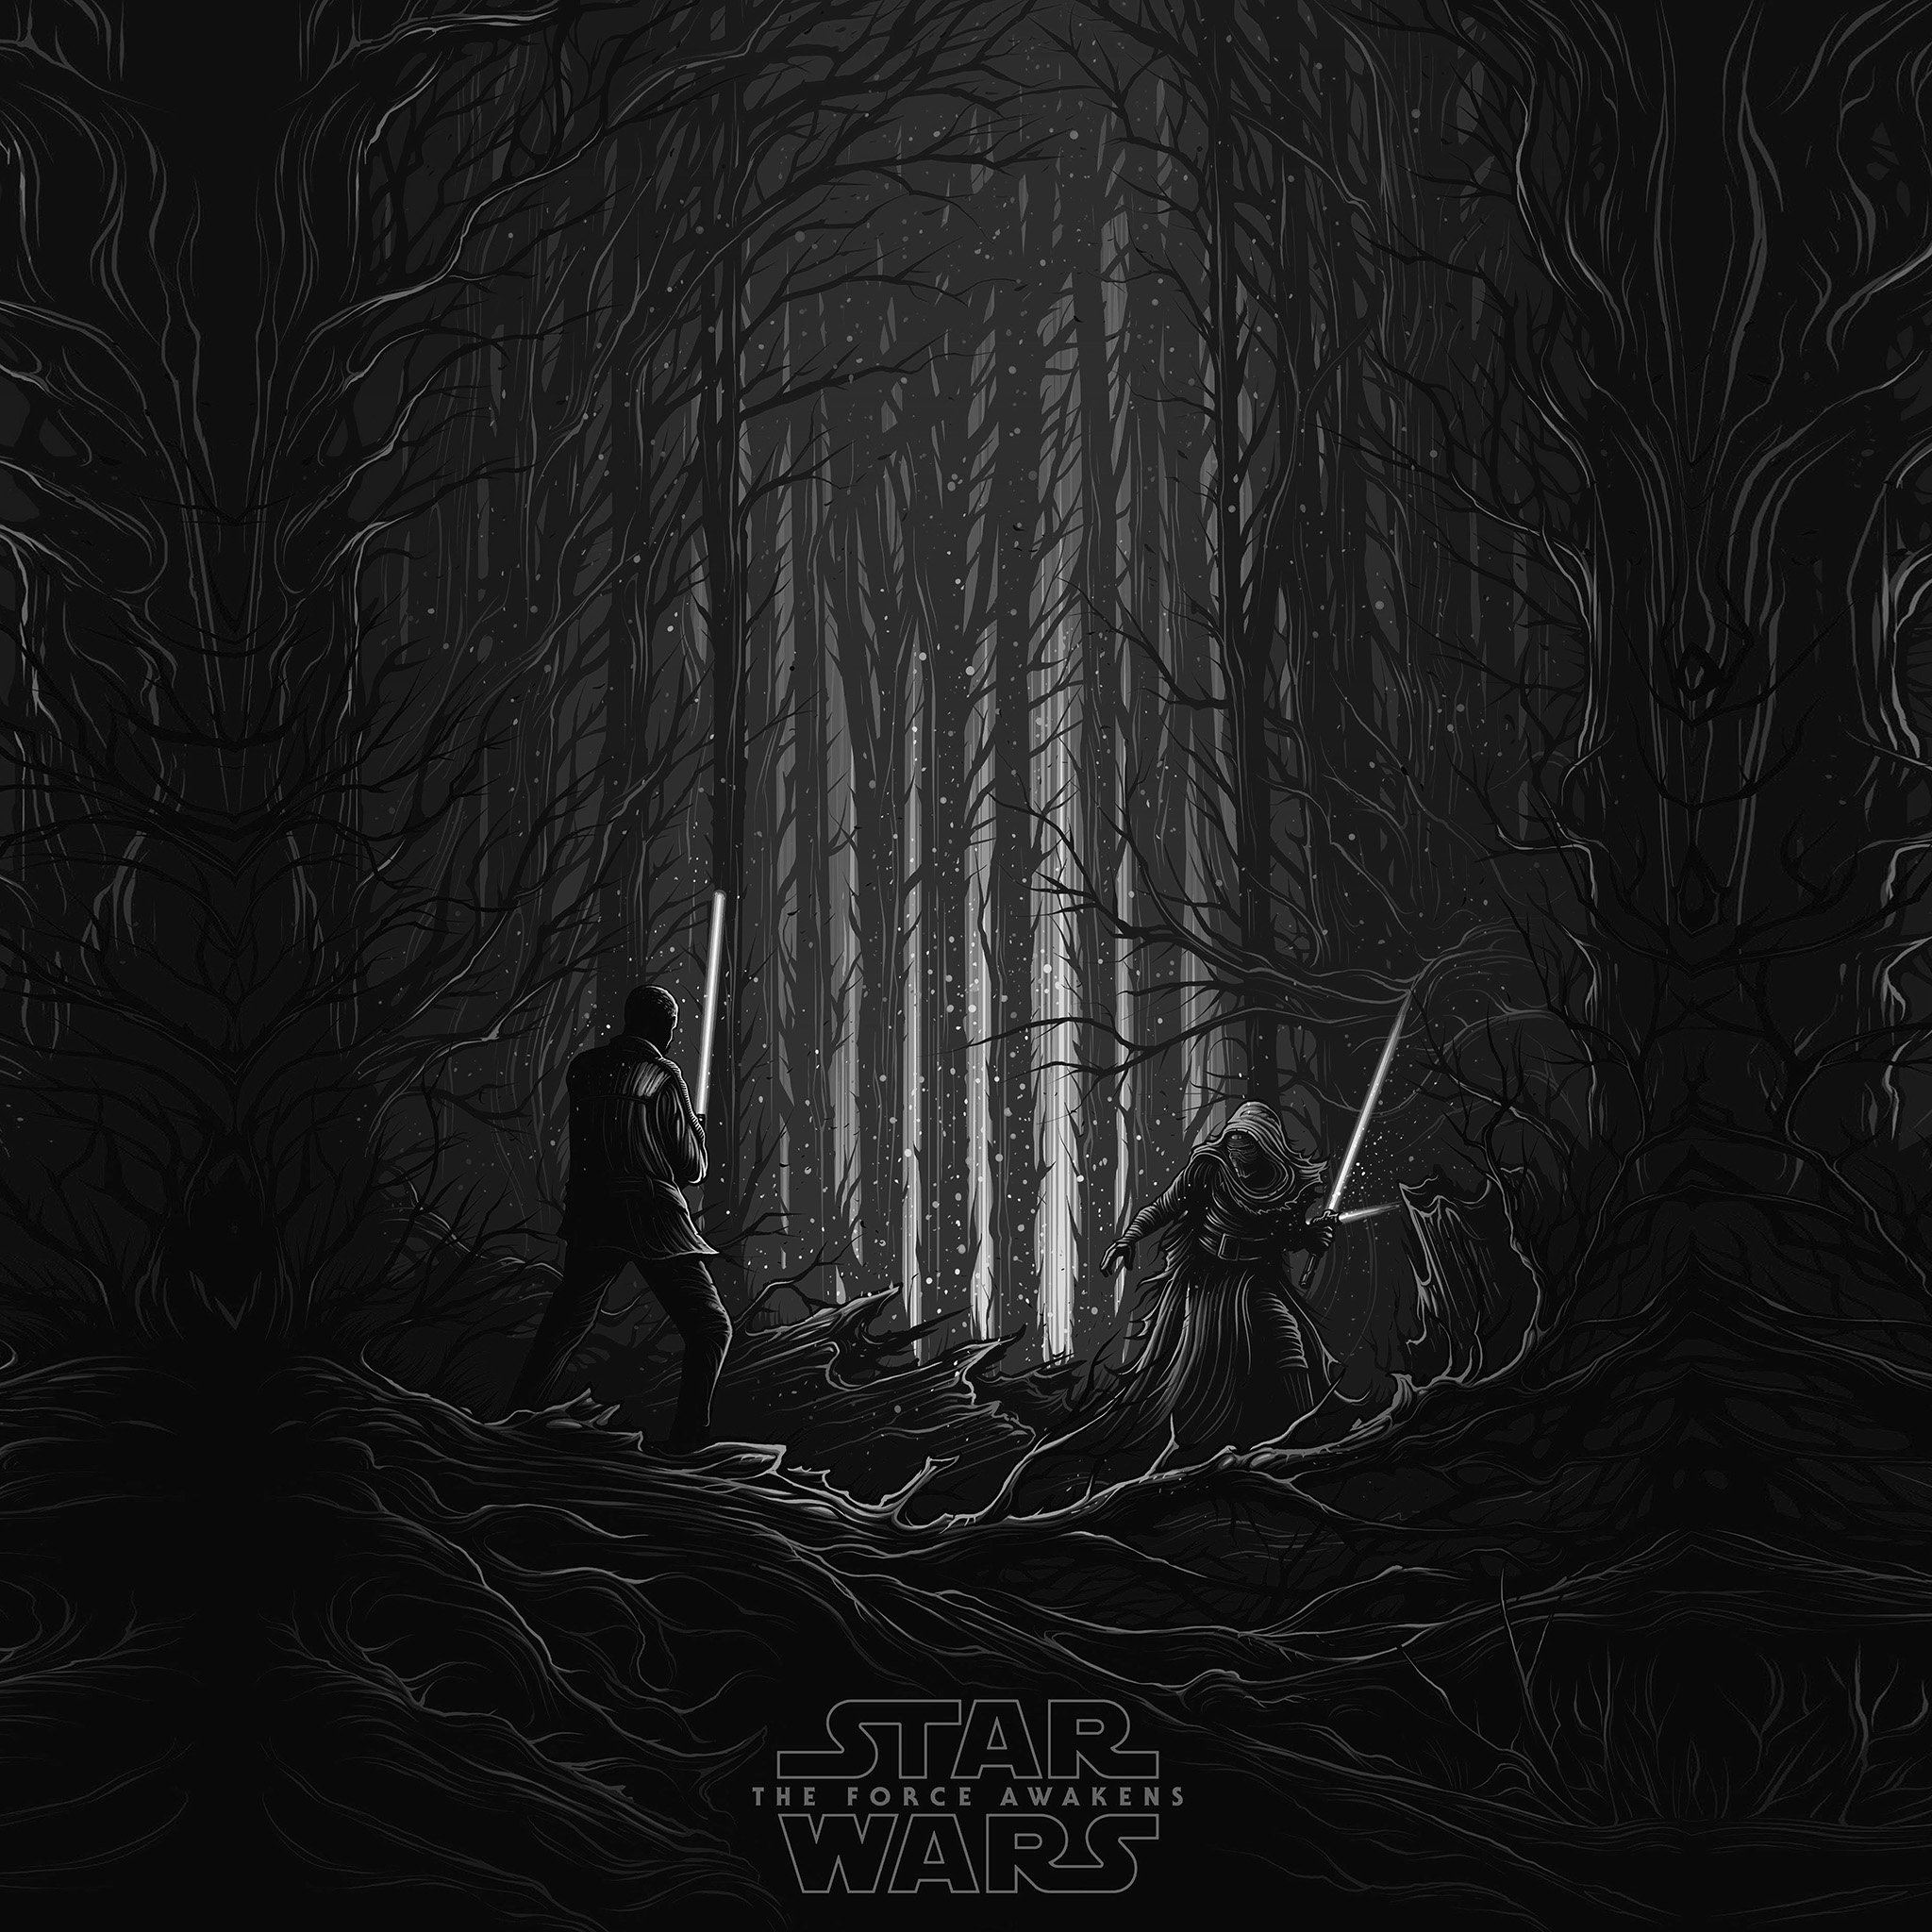 Starwars Illustration Bw Dark Art Film Ipad Air Wallpapers Free